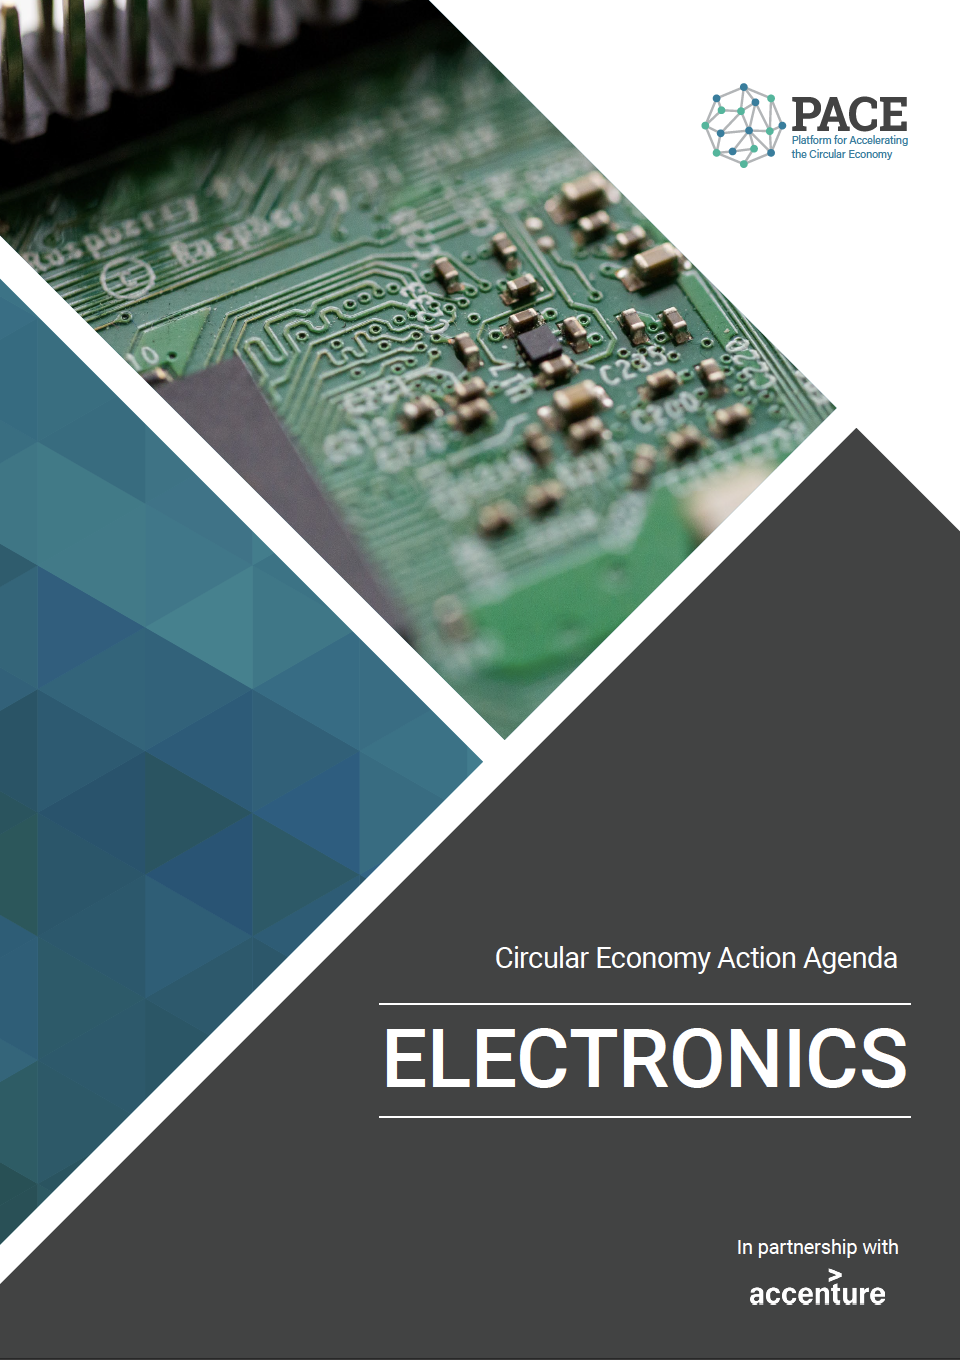 The Circular Economy Action Agenda for Electronics